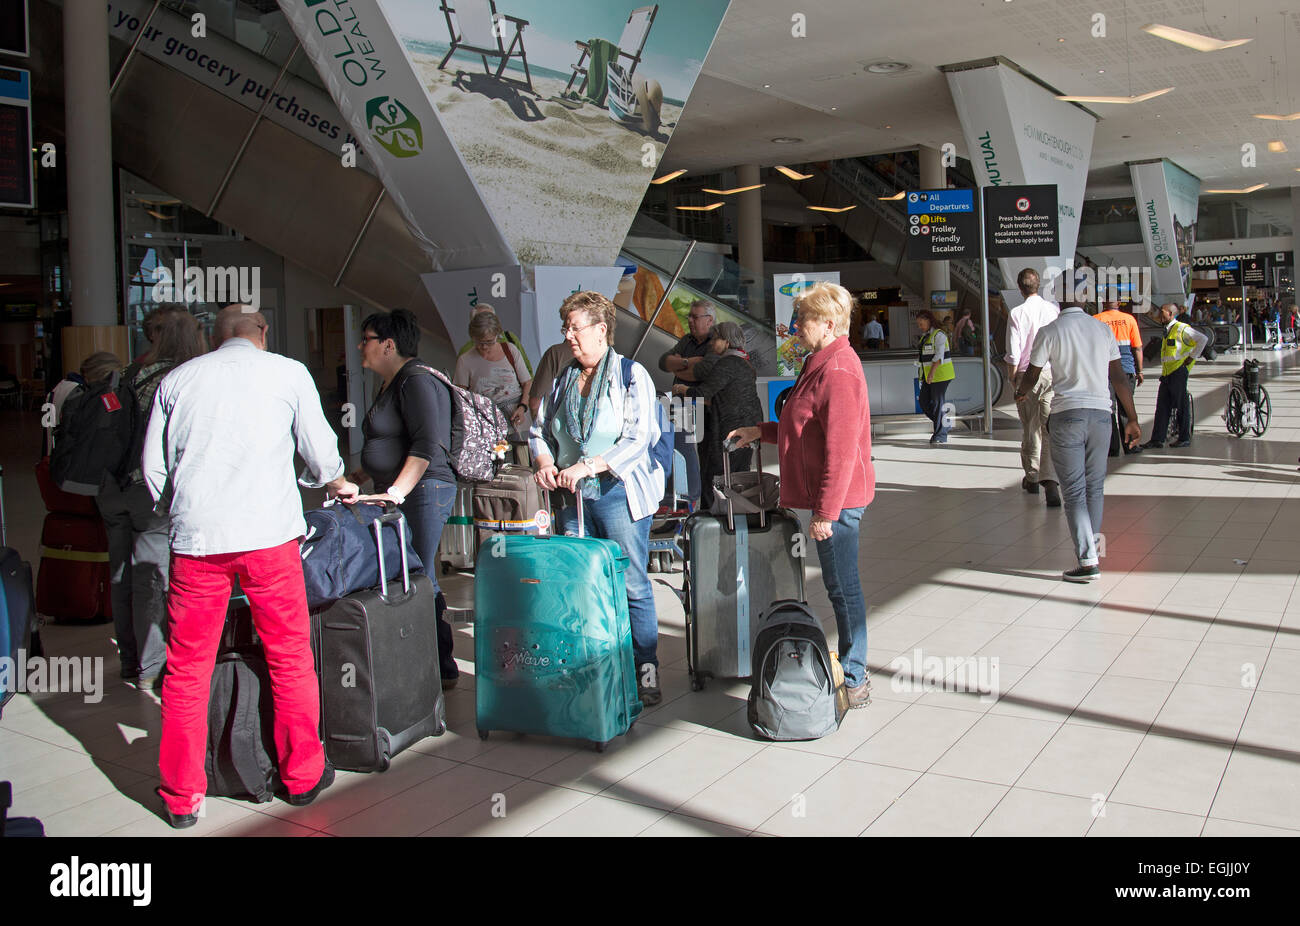 Meet Greet Airport Stock Photos Meet Greet Airport Stock Images